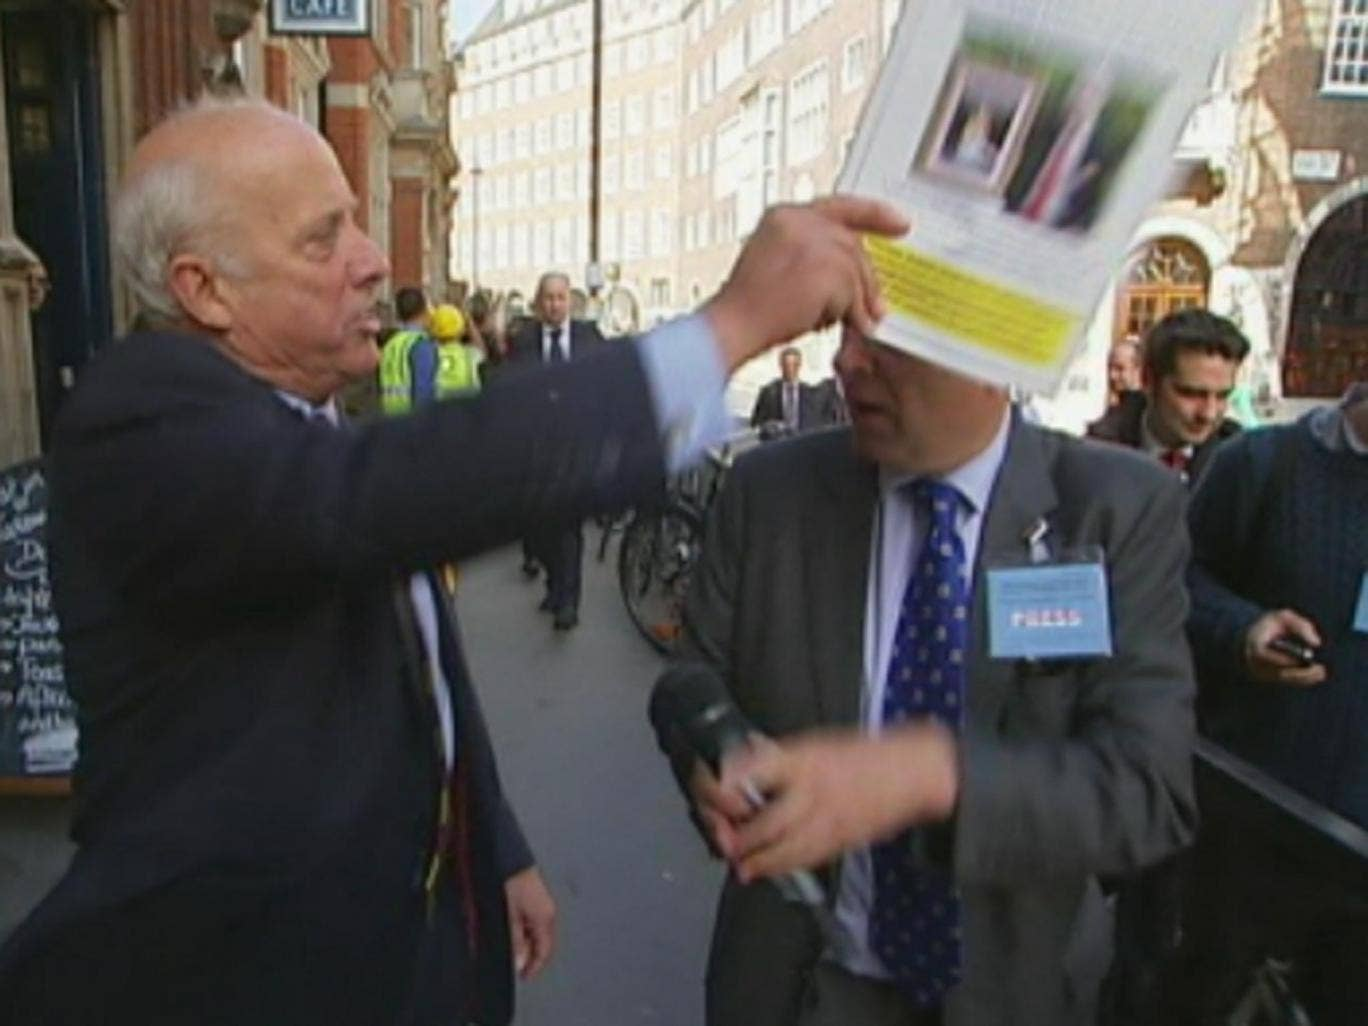 Bloom branded Crick 'disgraceful' before hitting him over the head with the brochure and throwing it to the floor